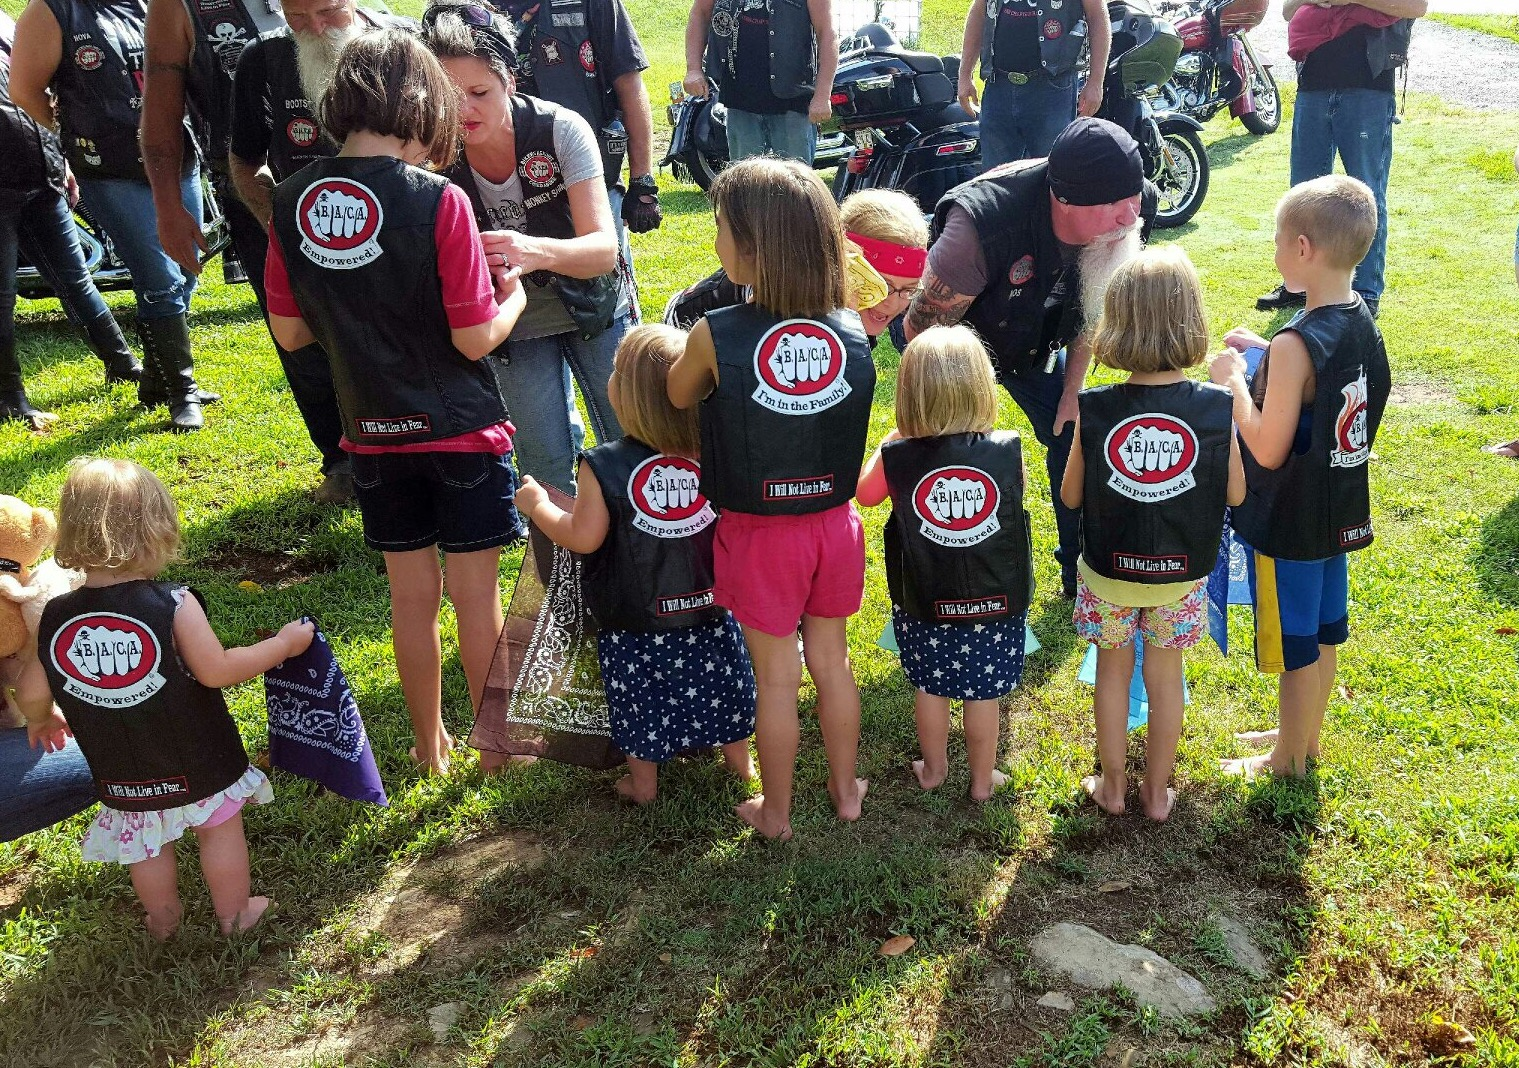 BACA: Bikers Roar in to Protect Children - Only In Arkansas